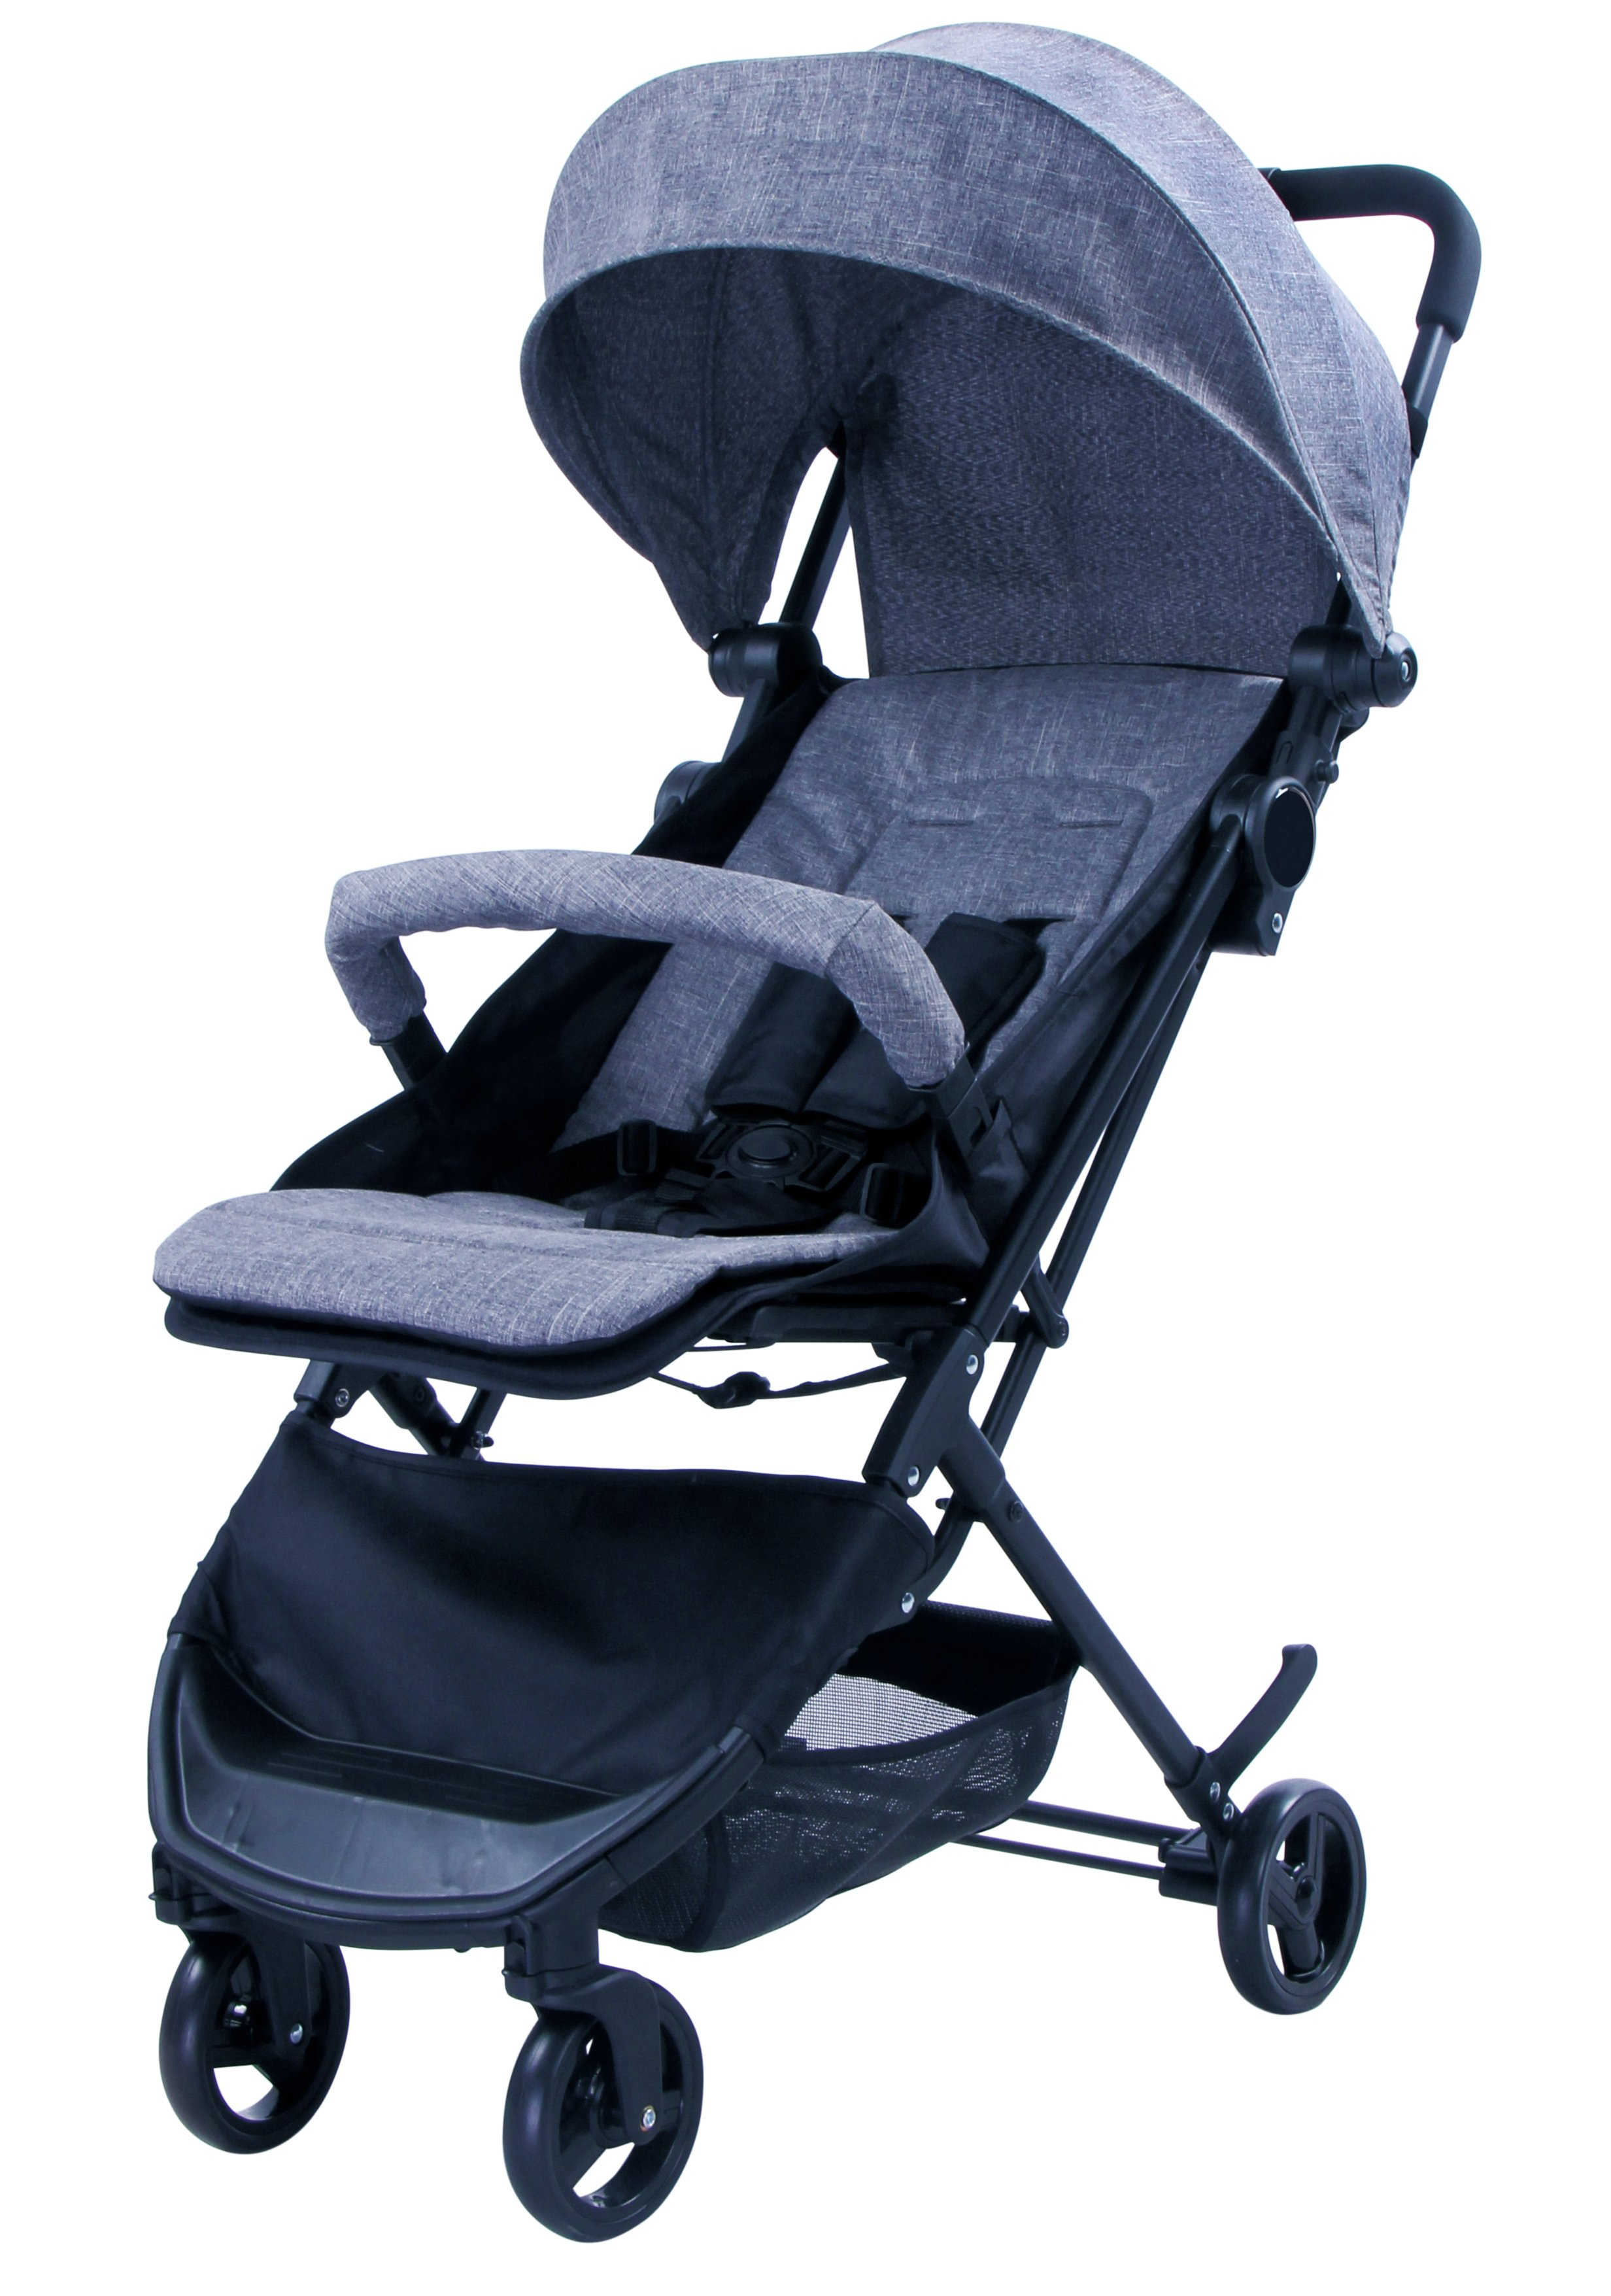 Image of BabyStart One Hand Fold Pushchair